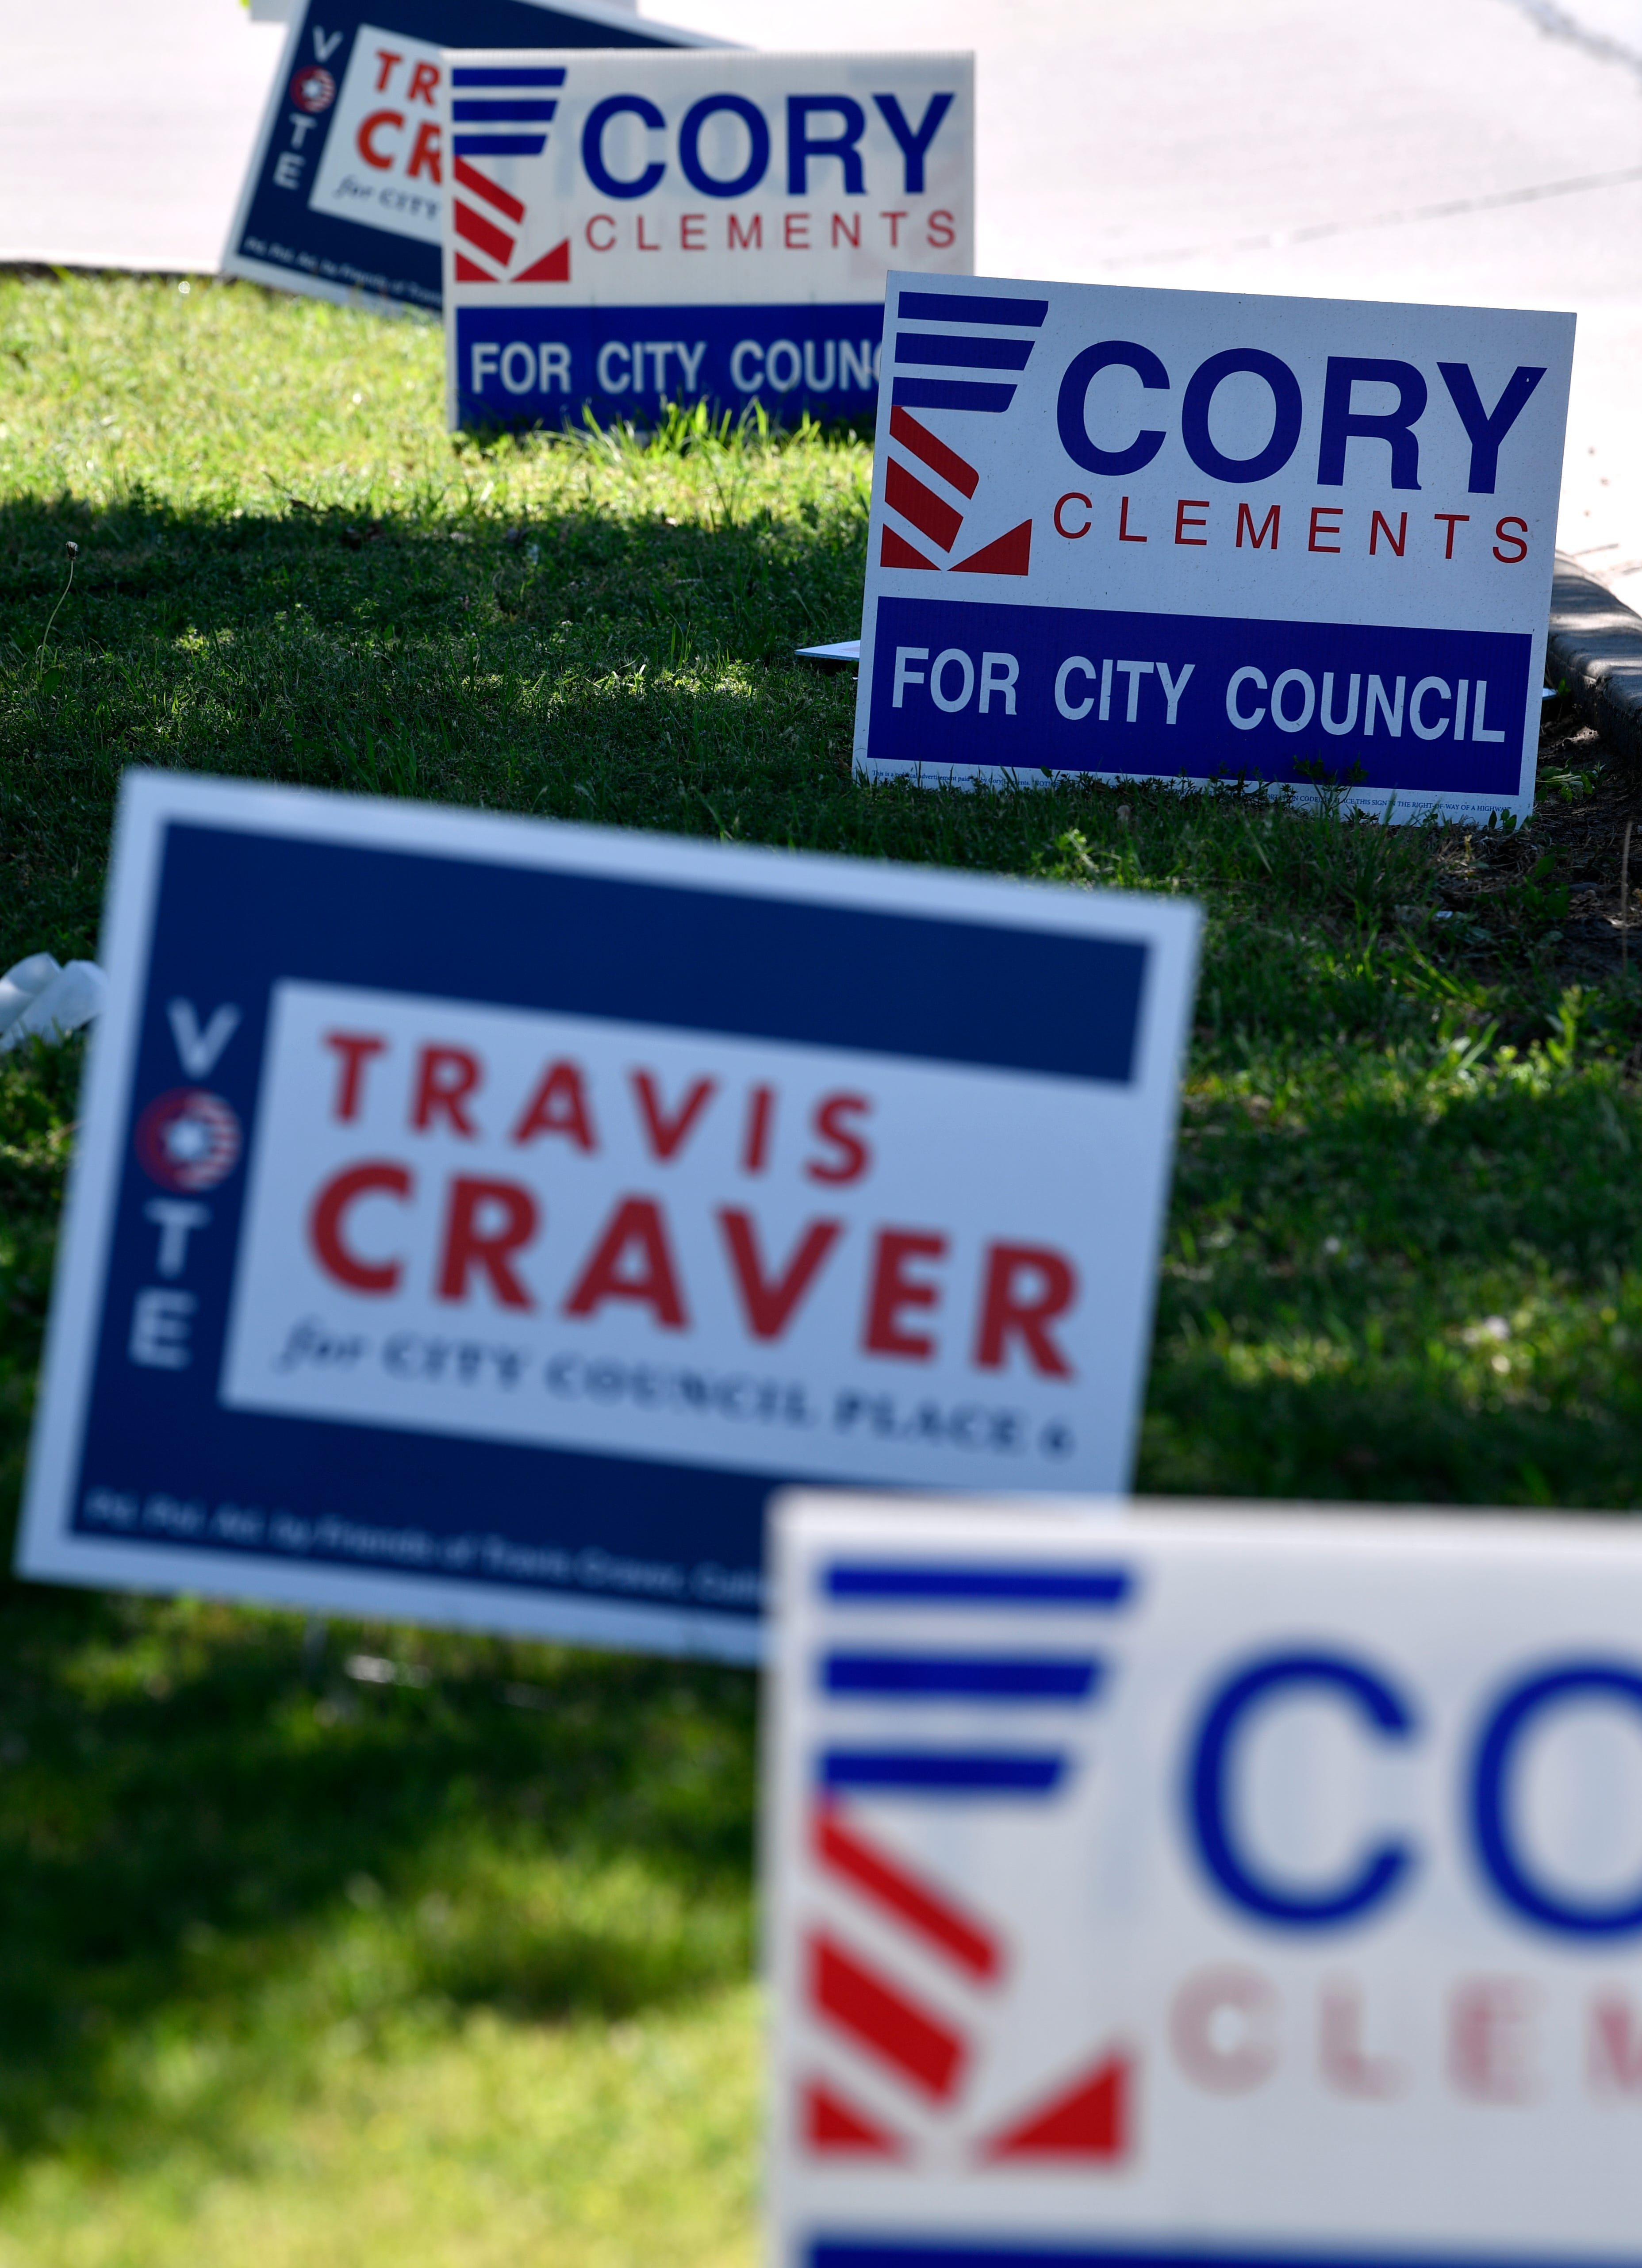 Campaign signs for Abilene City Council Place 5 candidate Cory Clements are mixed with those of Place 6 candidate Travis Craver along South 14th Street.